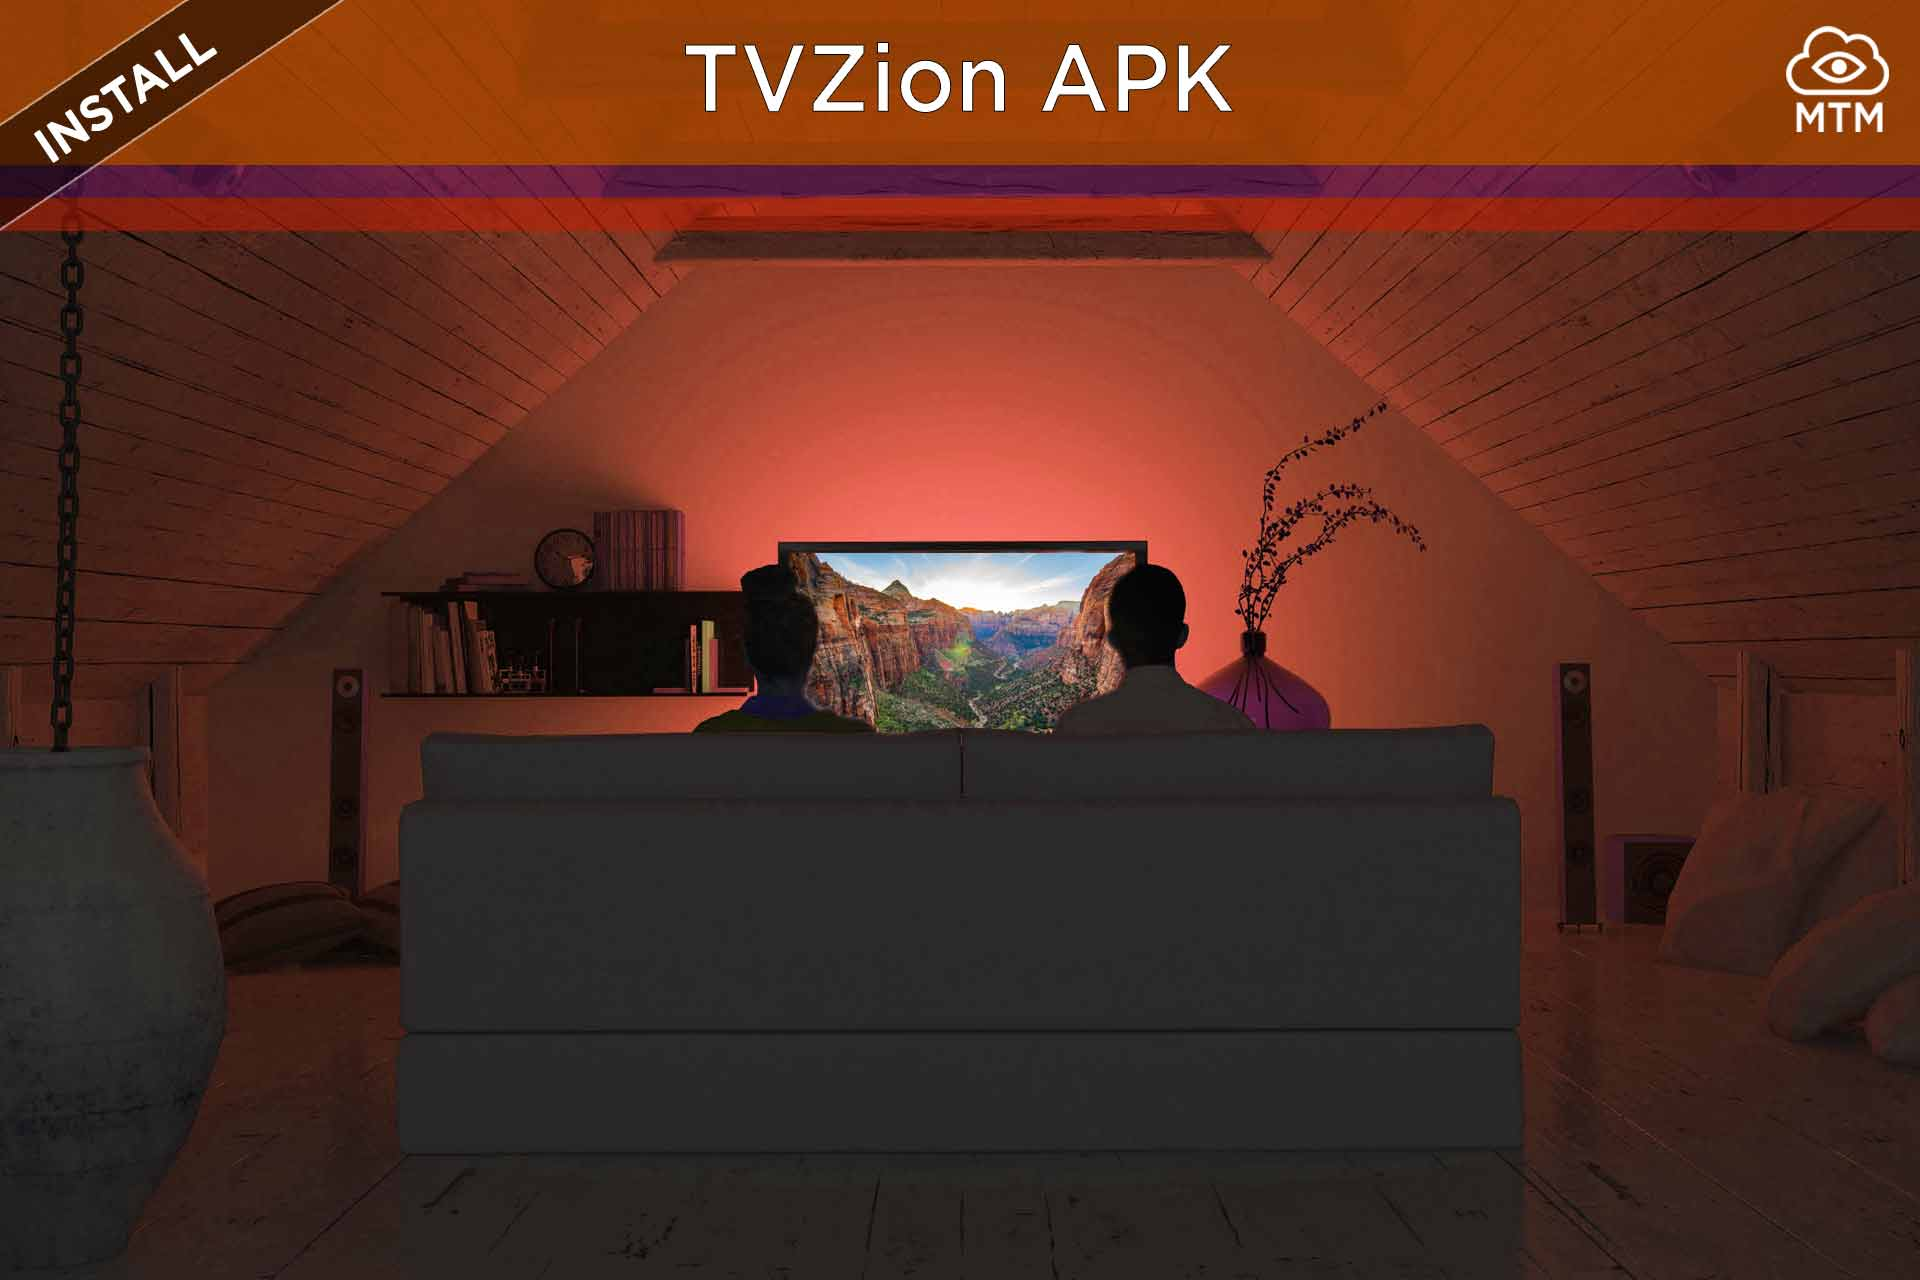 How to Install TVZion APK on Firestick | Free Movie & TV Streams